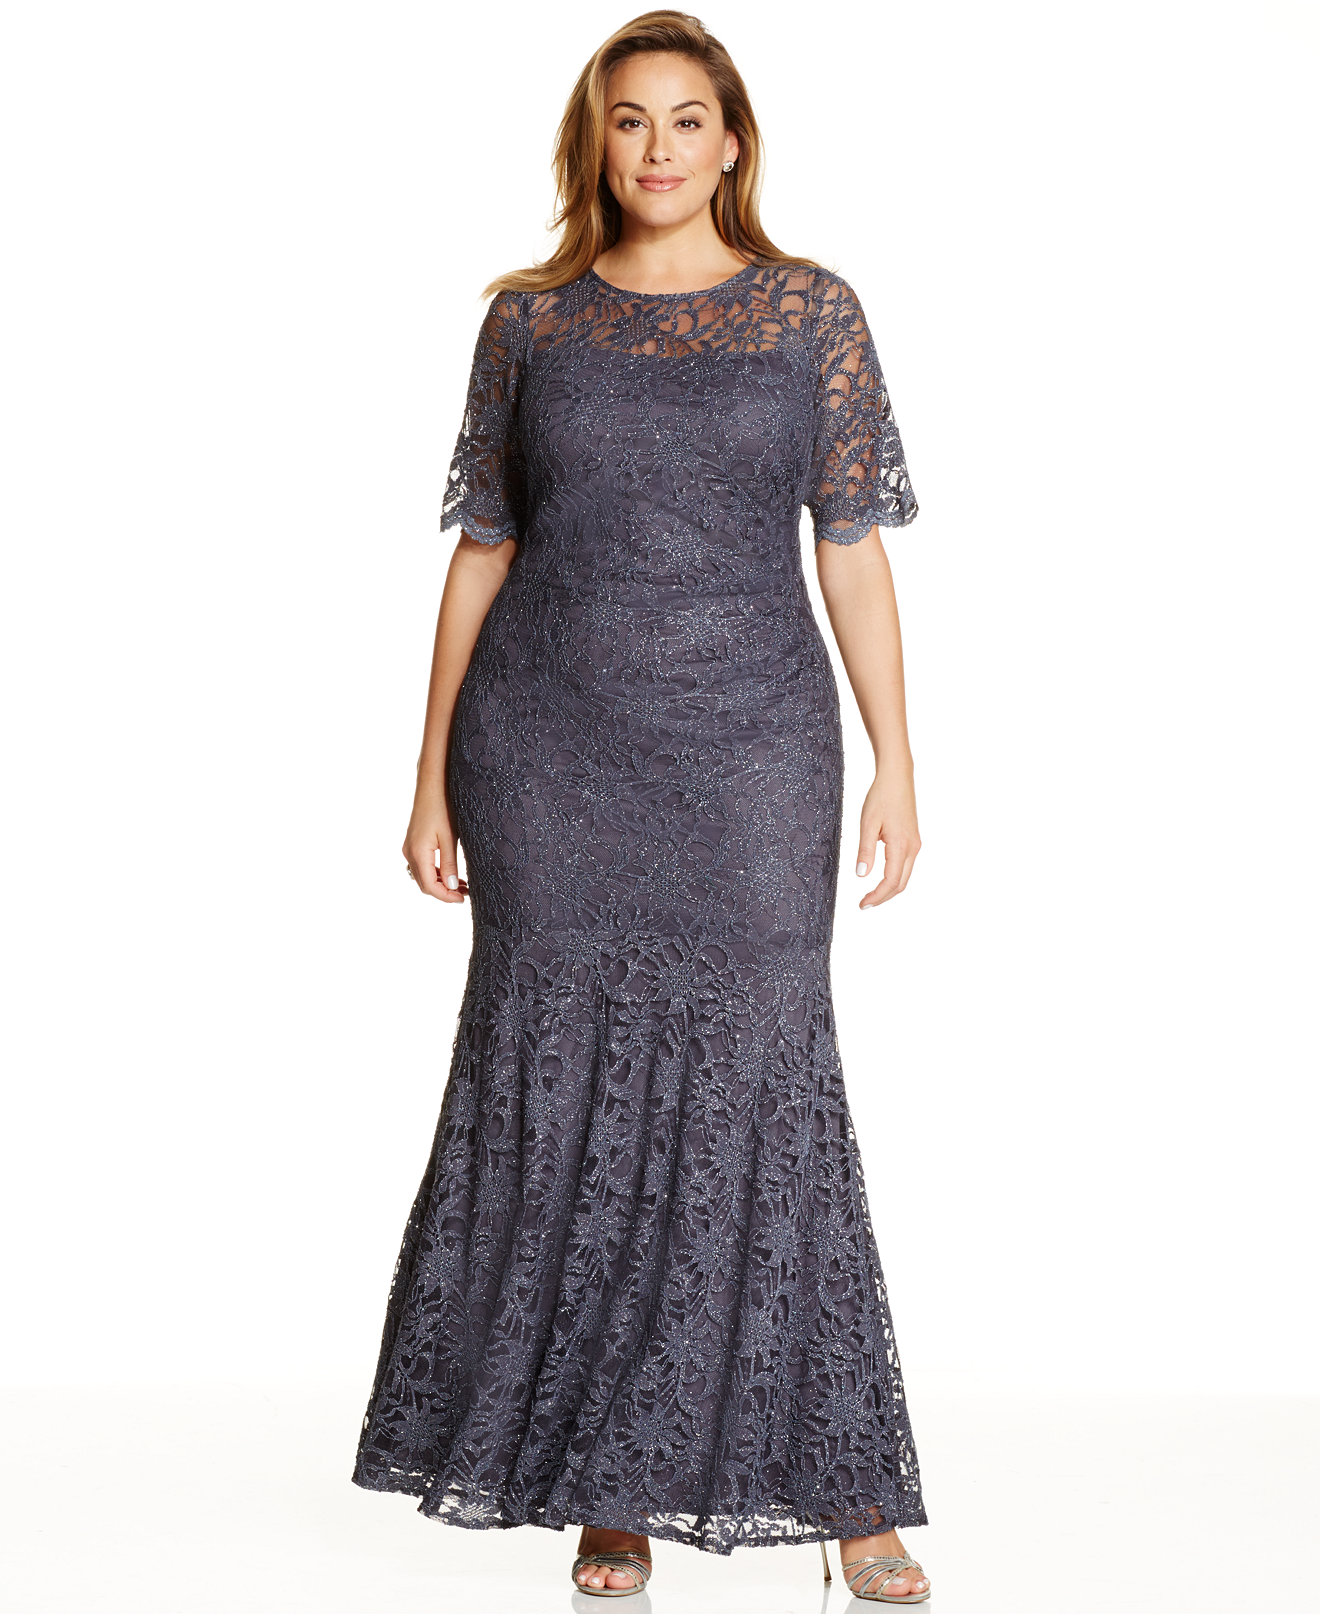 Macys Plus Size Dresses Wedding Guest - Prom Dresses With Pockets